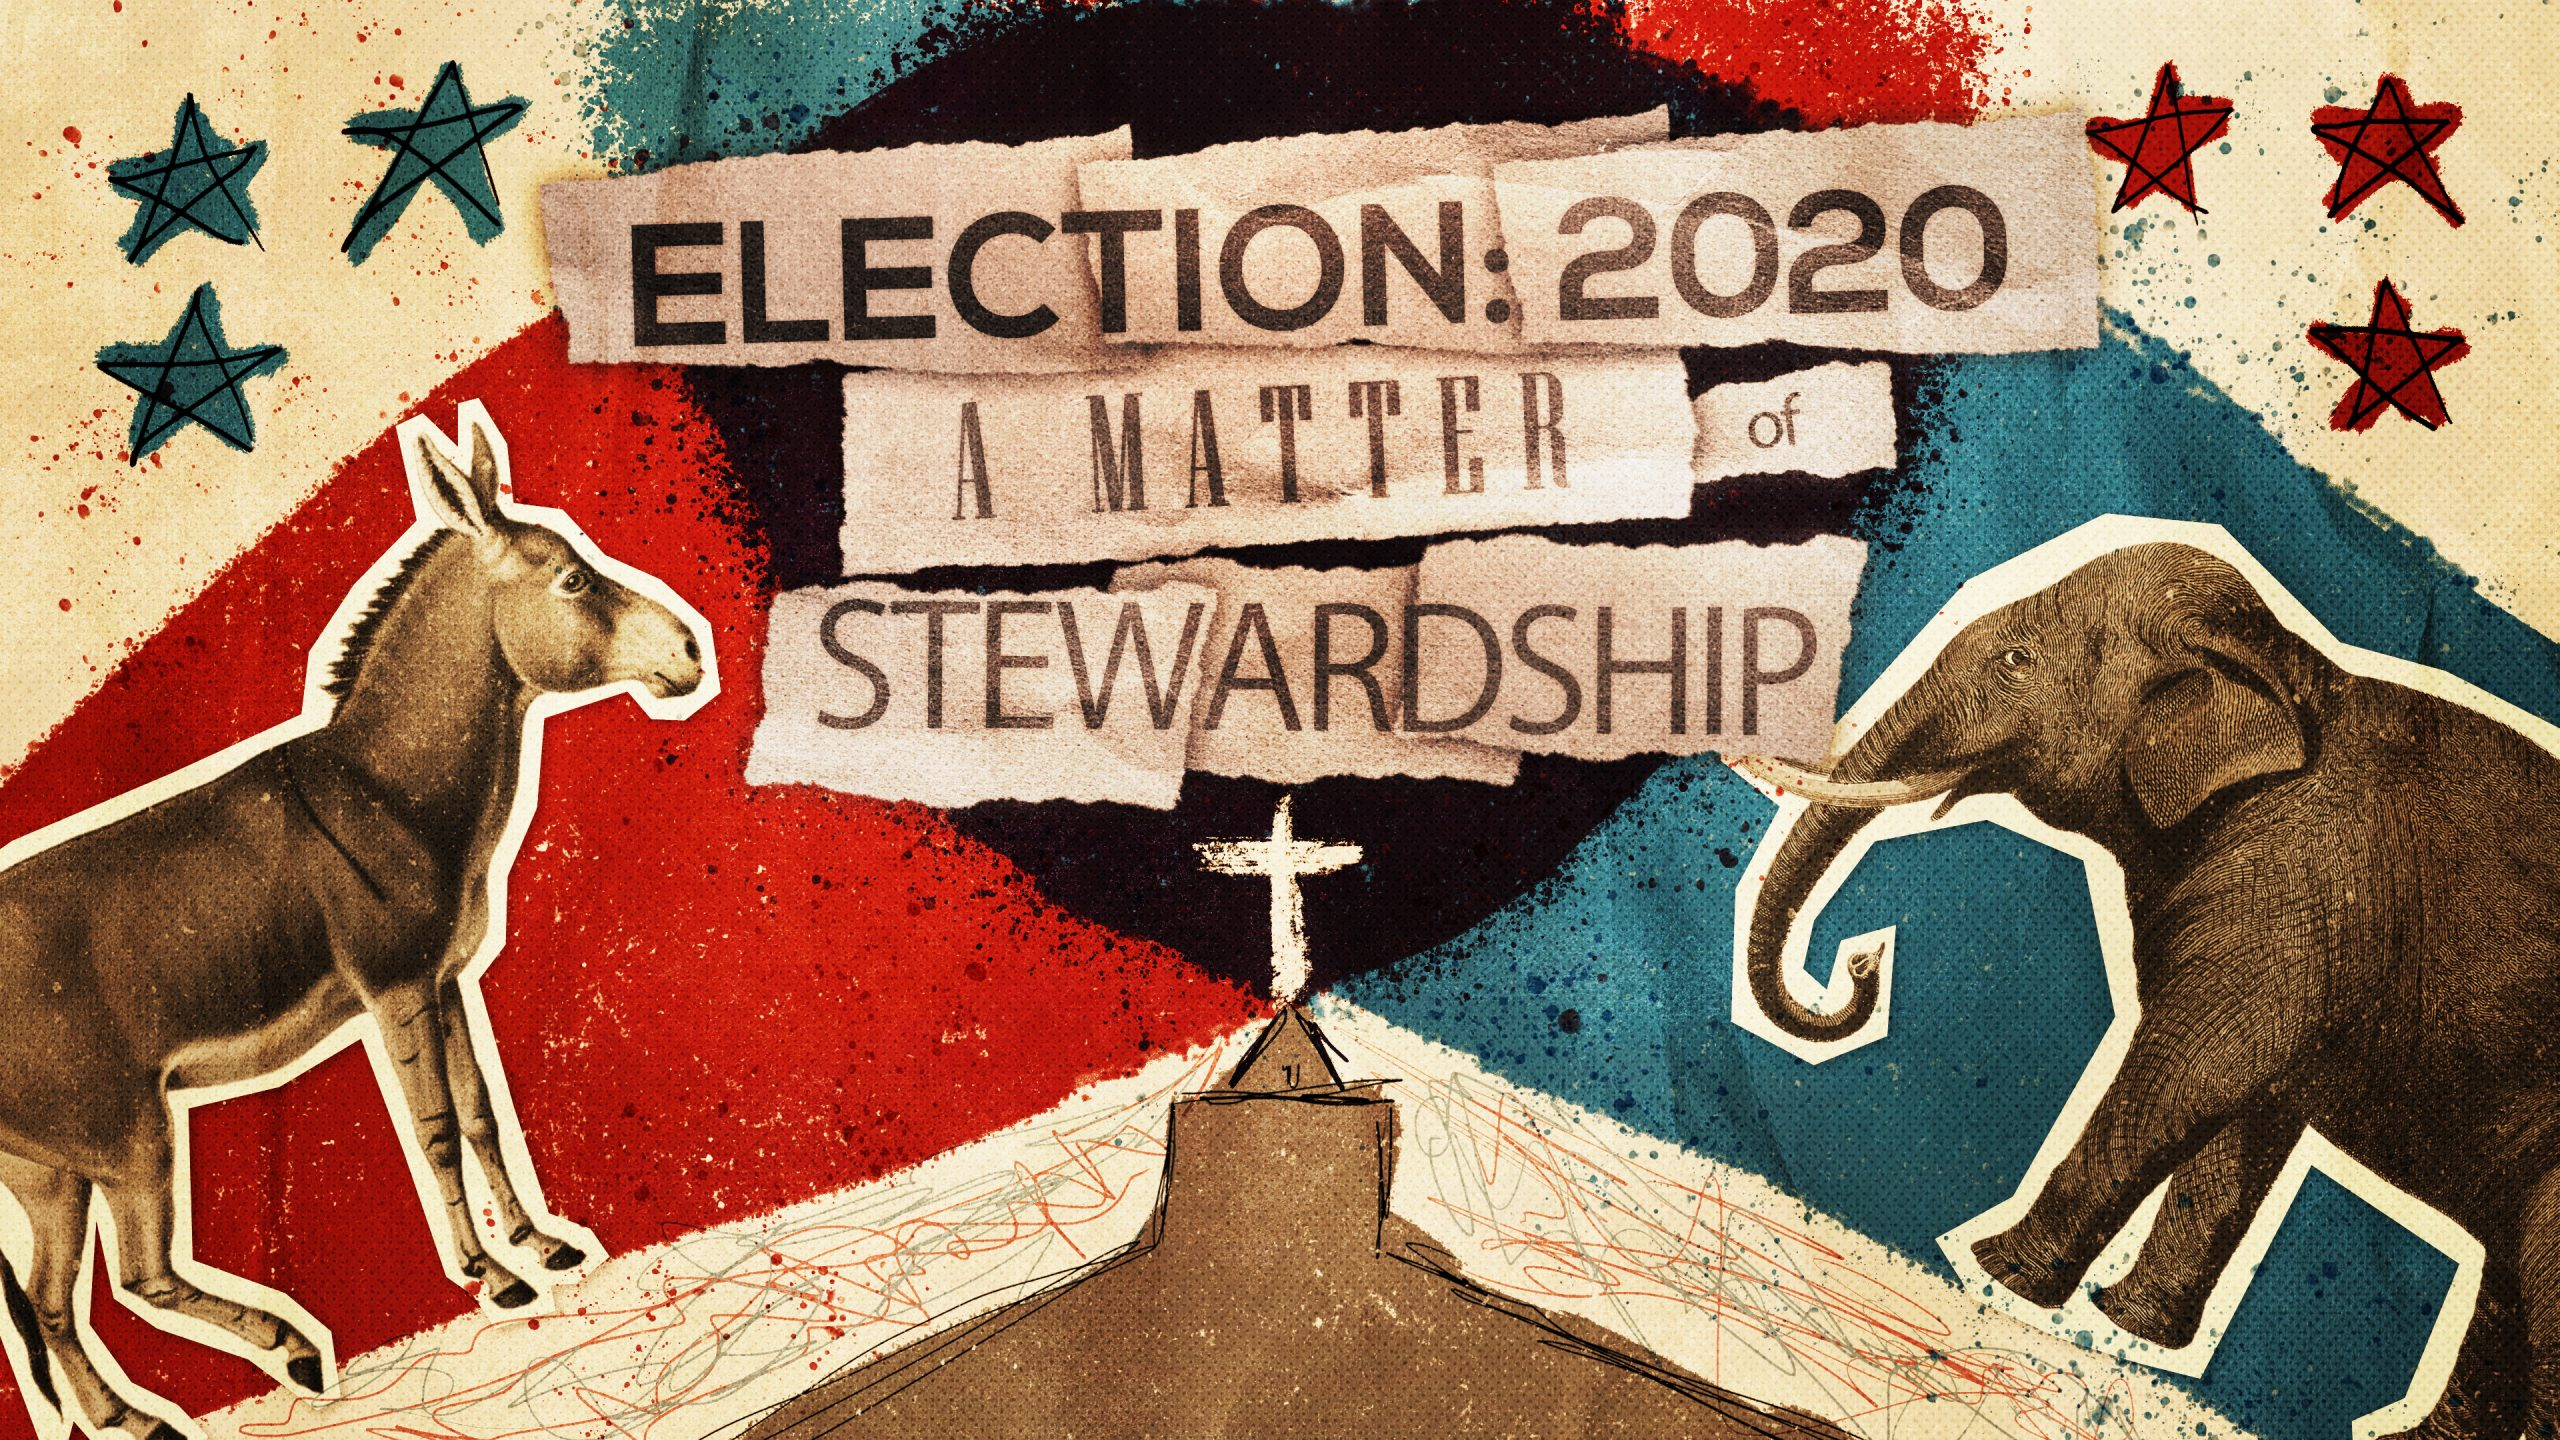 Election 2020: A Matter of Stewardship